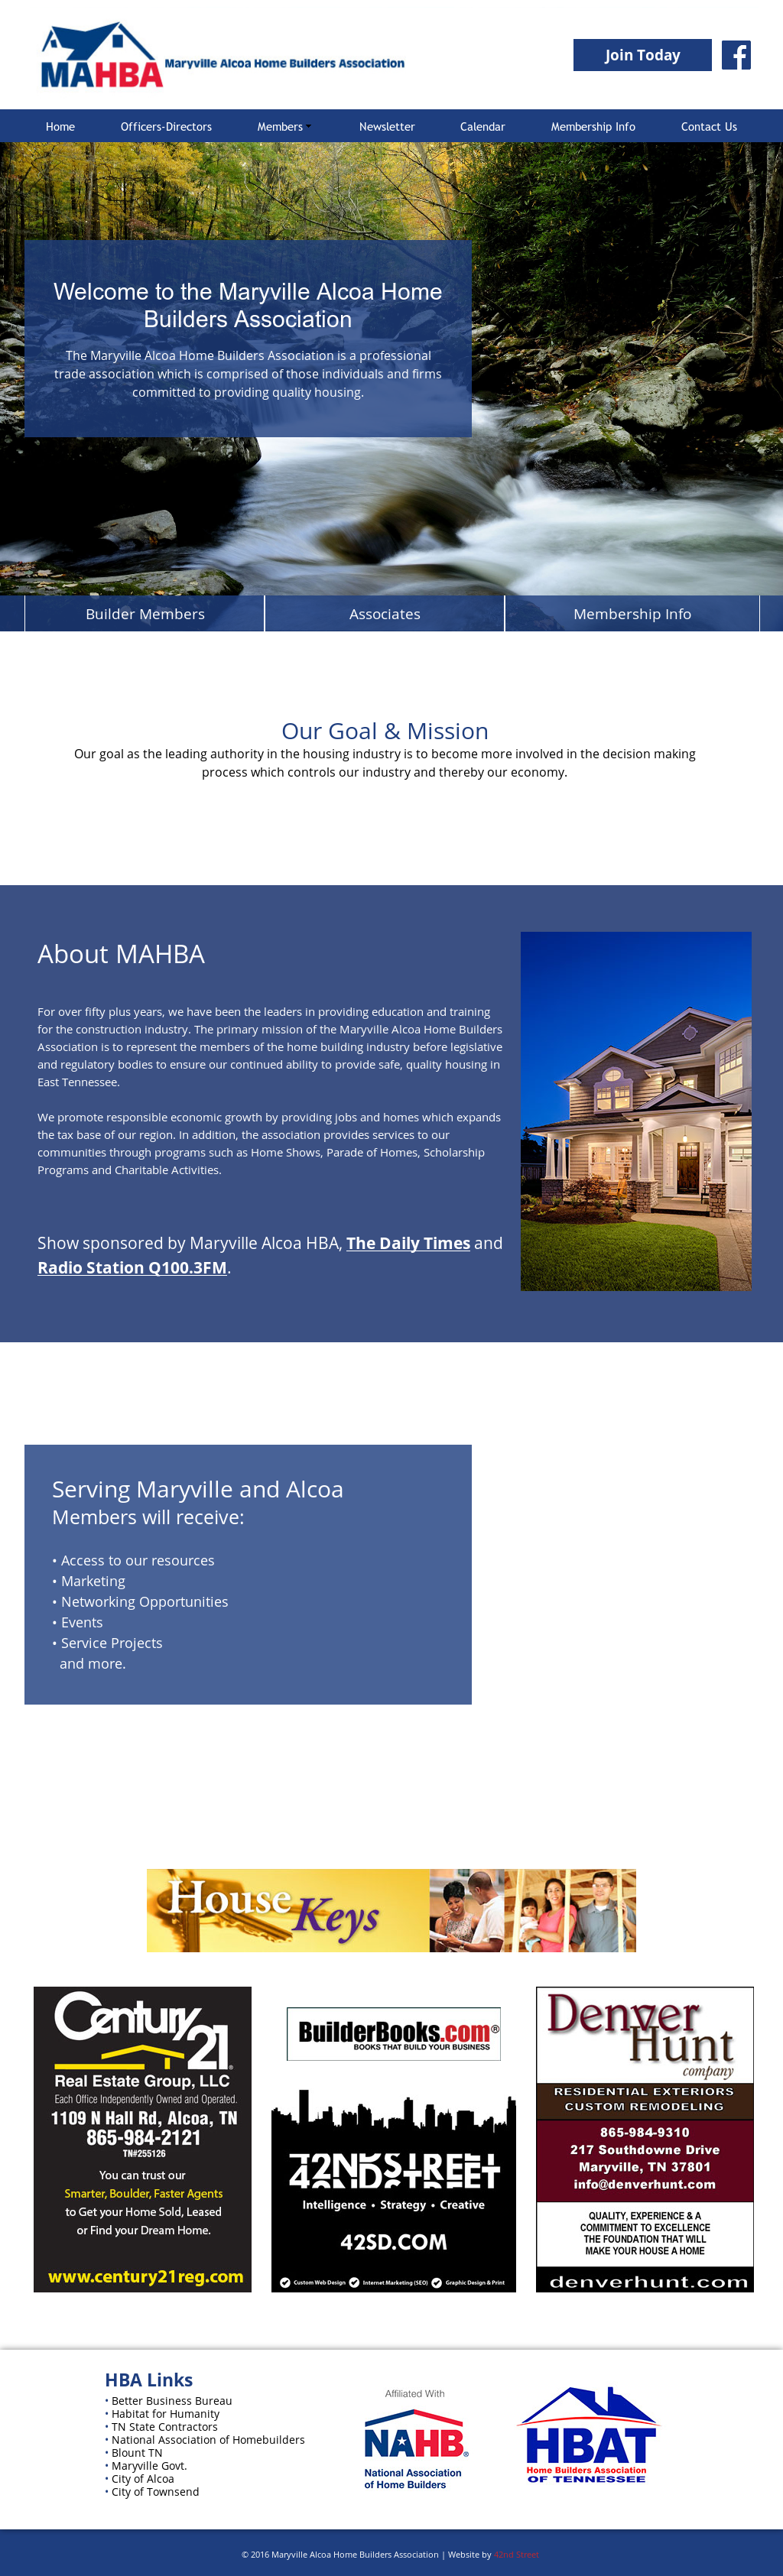 Maryville Alcoa Home Builders